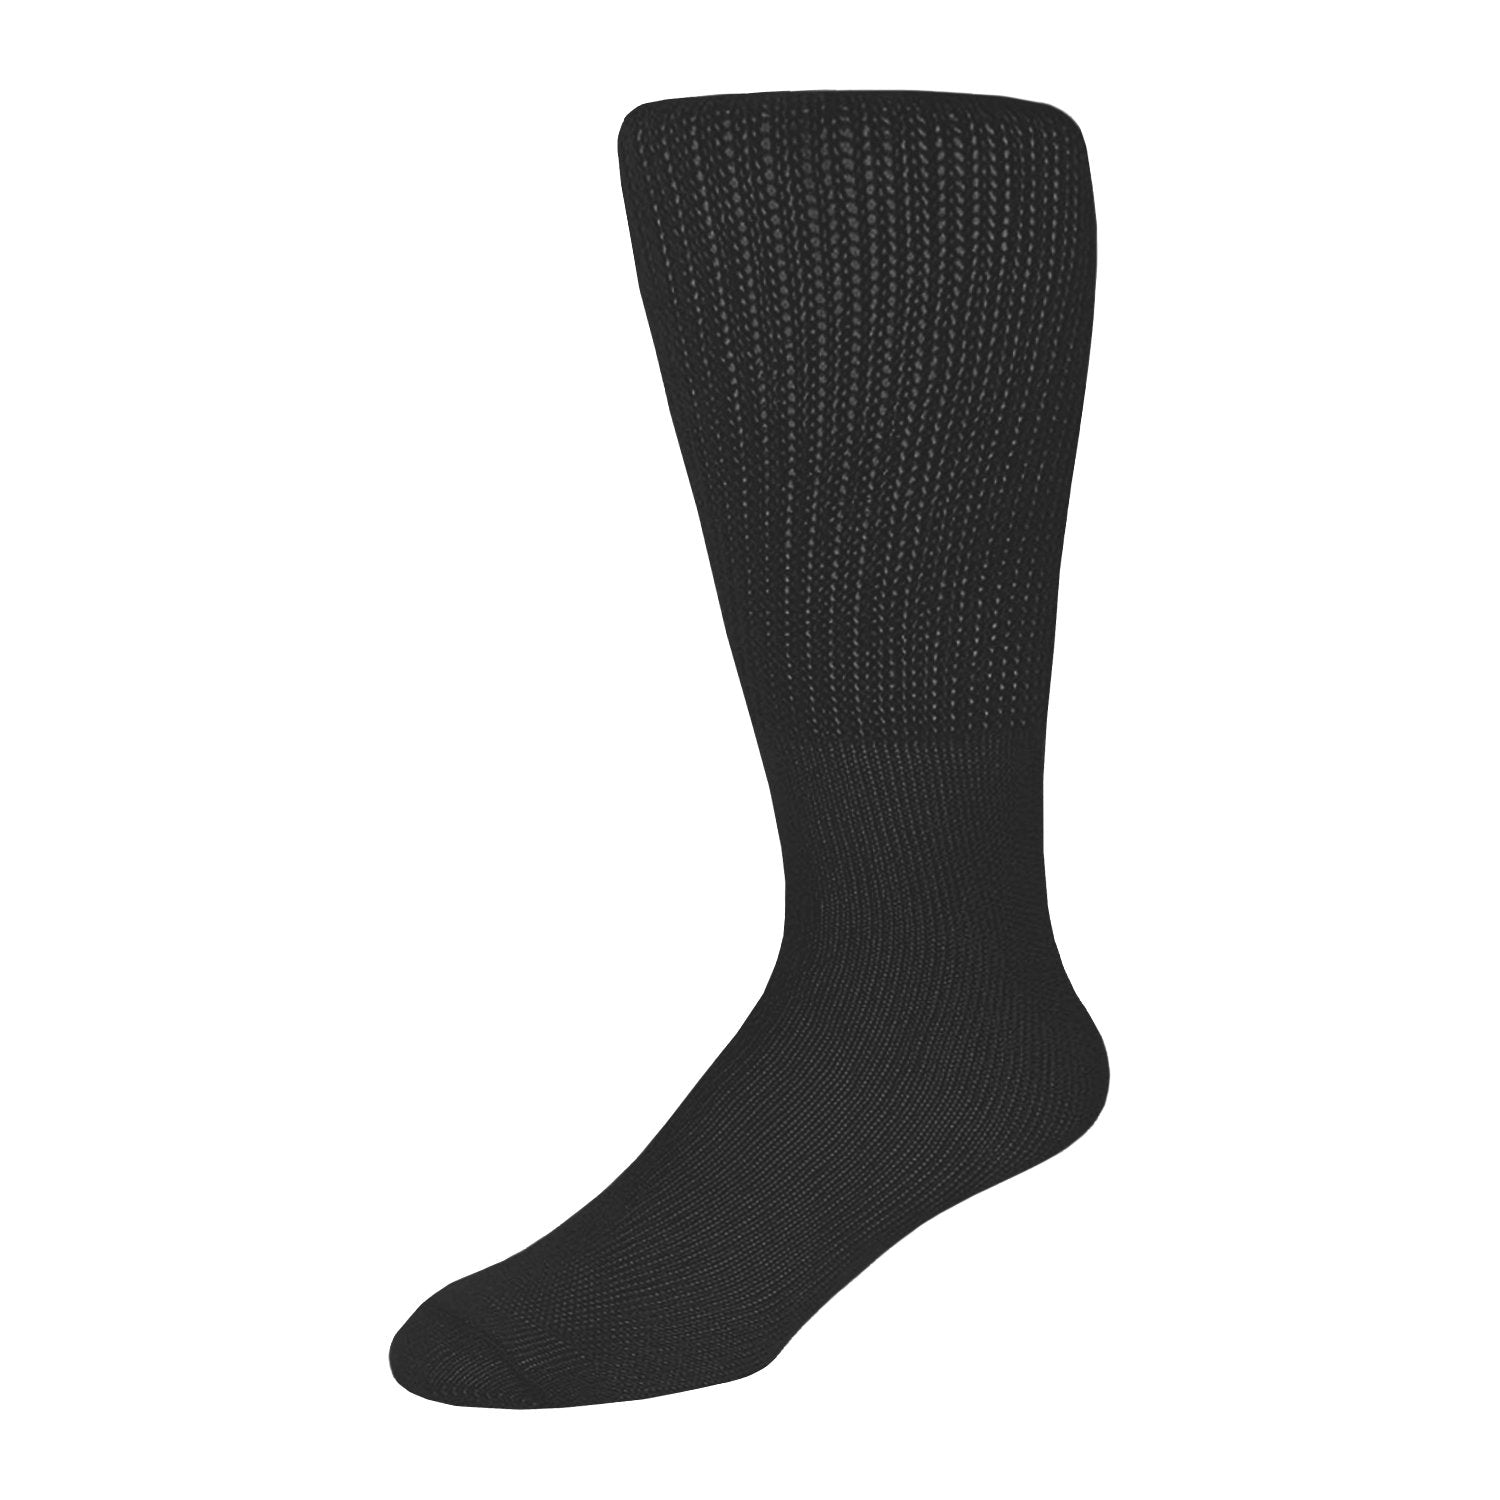 Extra Wide Diabetic Socks, Crew/Over-the-Calf  Medical Swollen Feet Socks